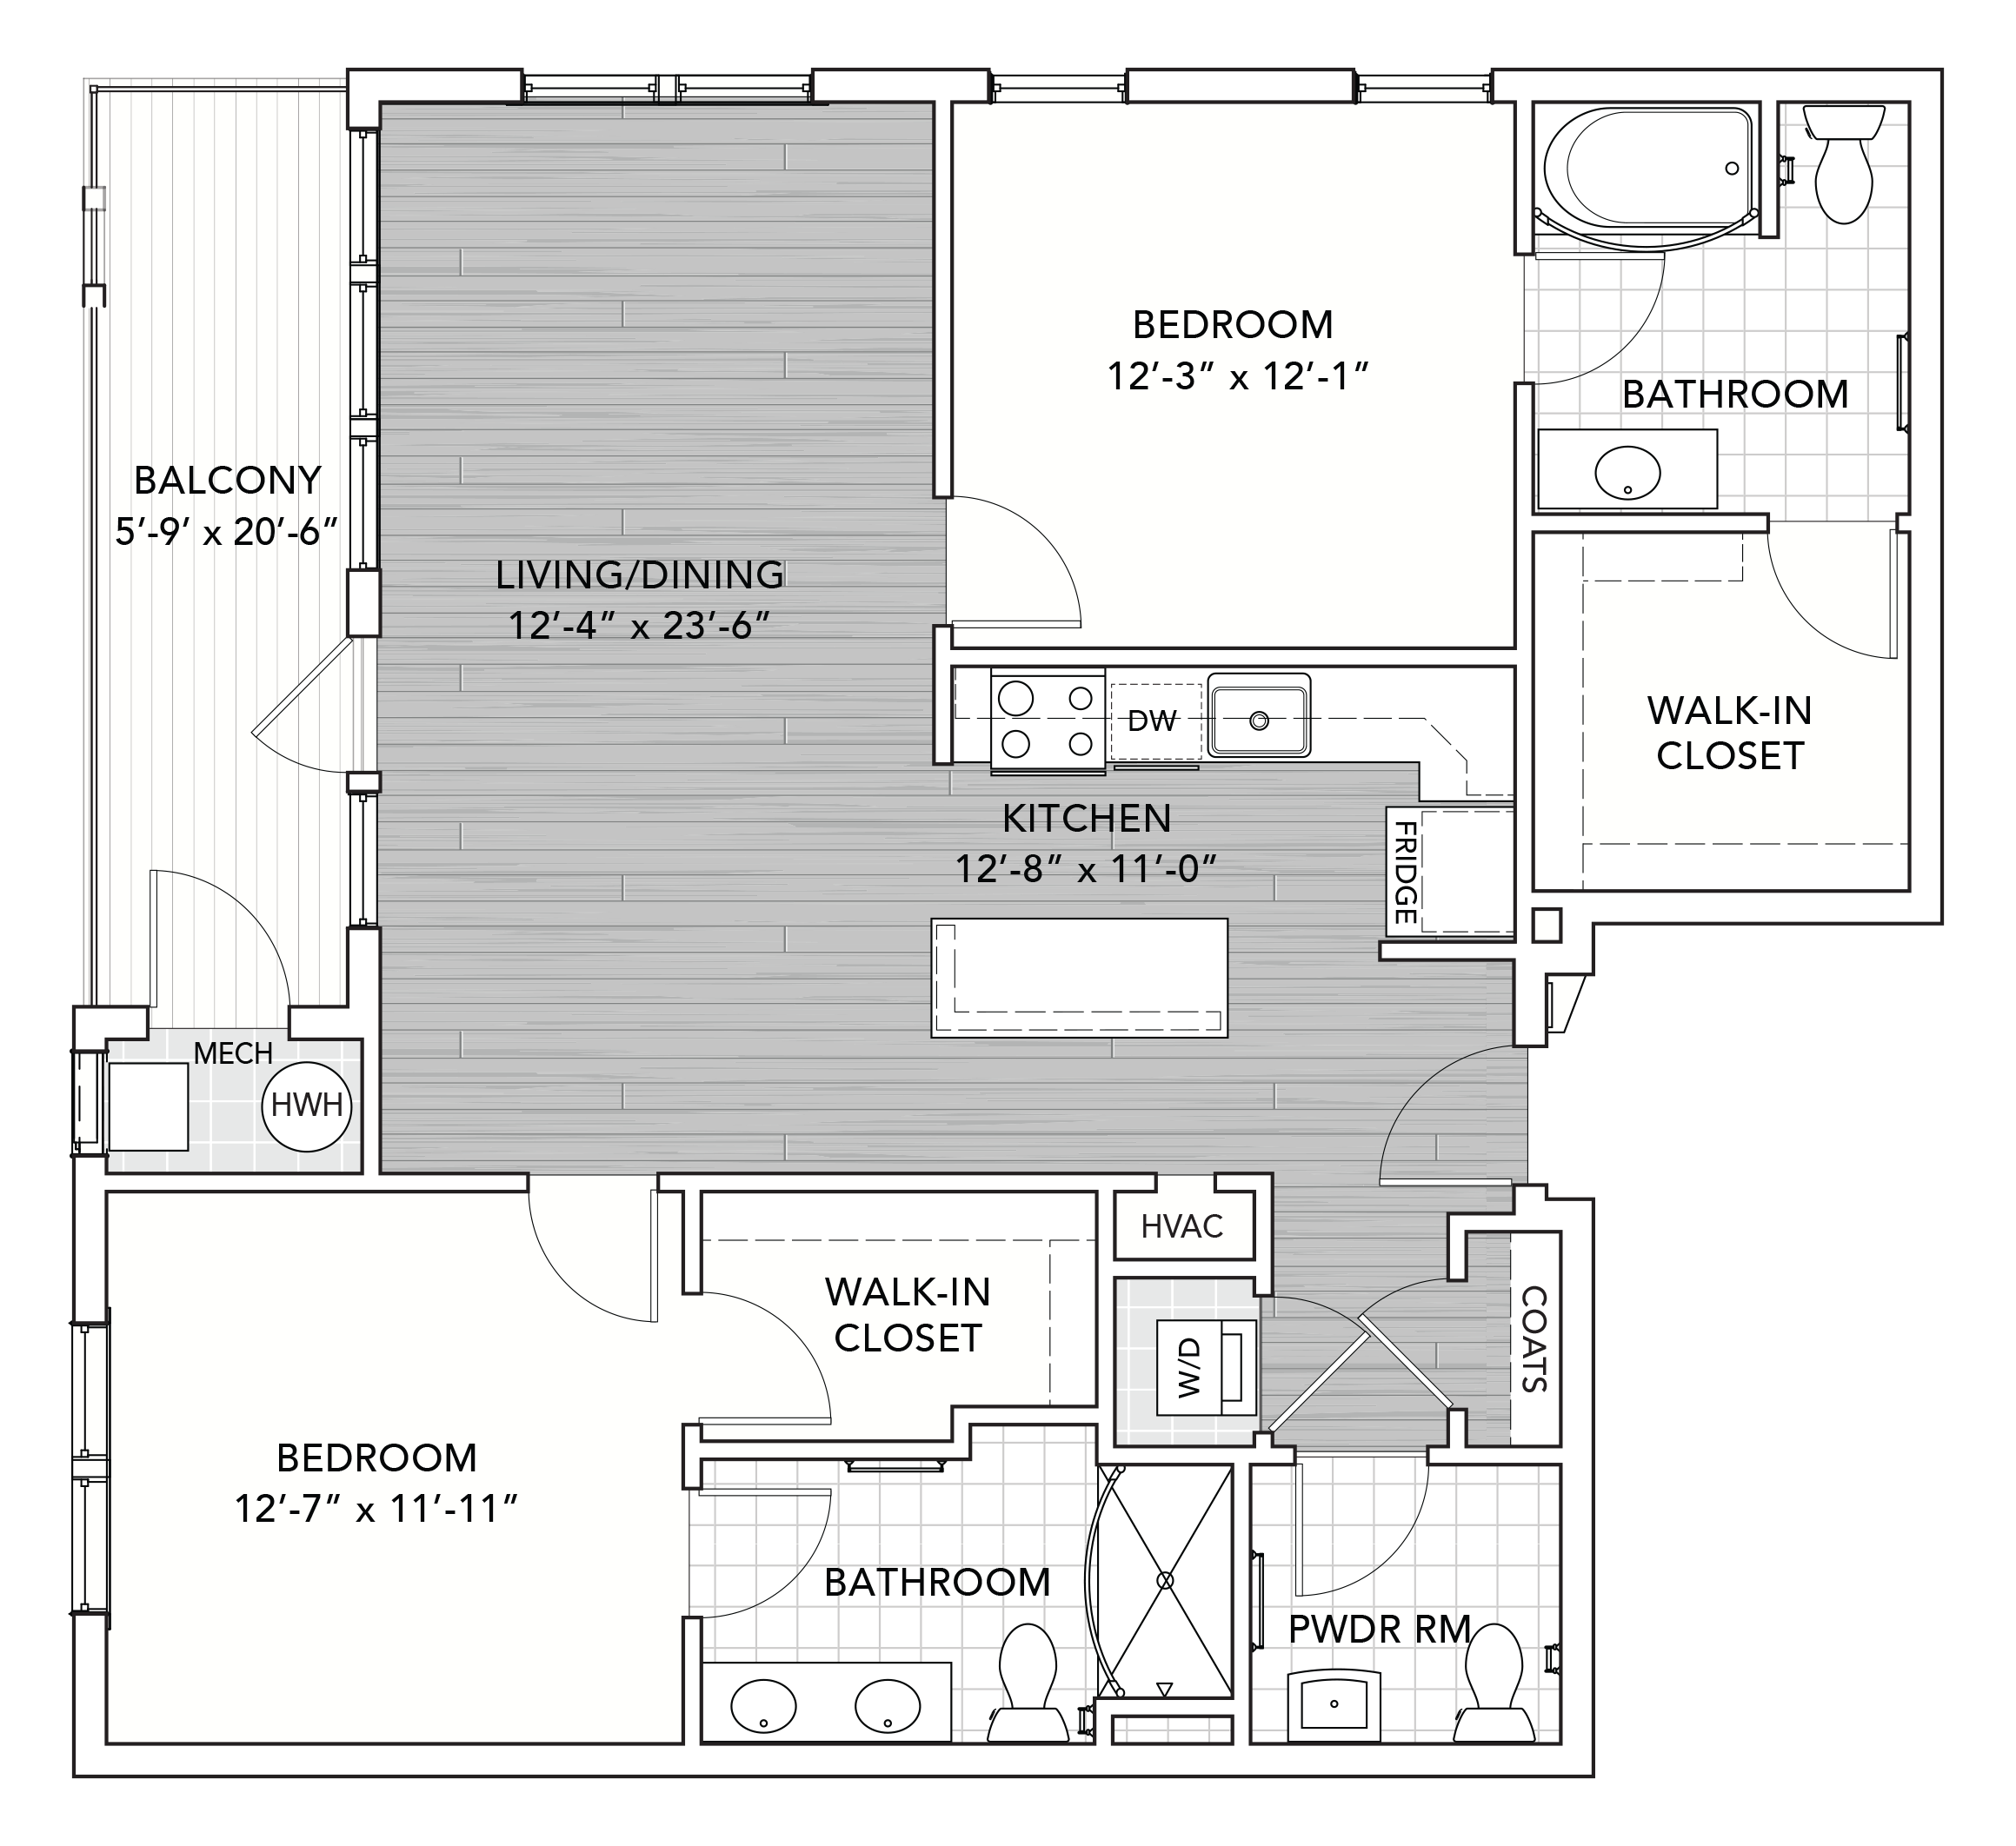 P0655013 parksquare b81 1243 2 floorplan